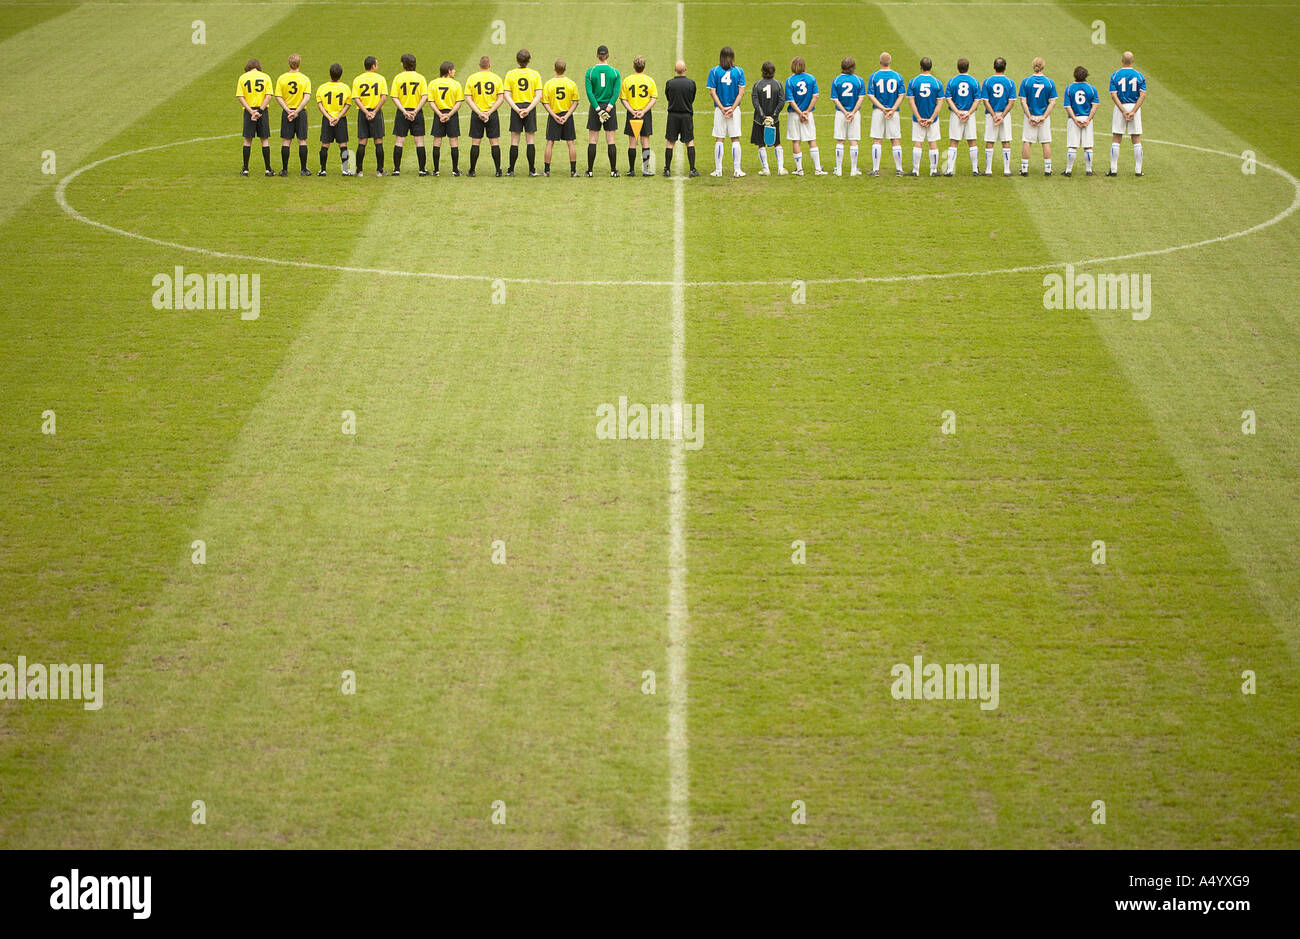 Football teams on pitch - Stock Image